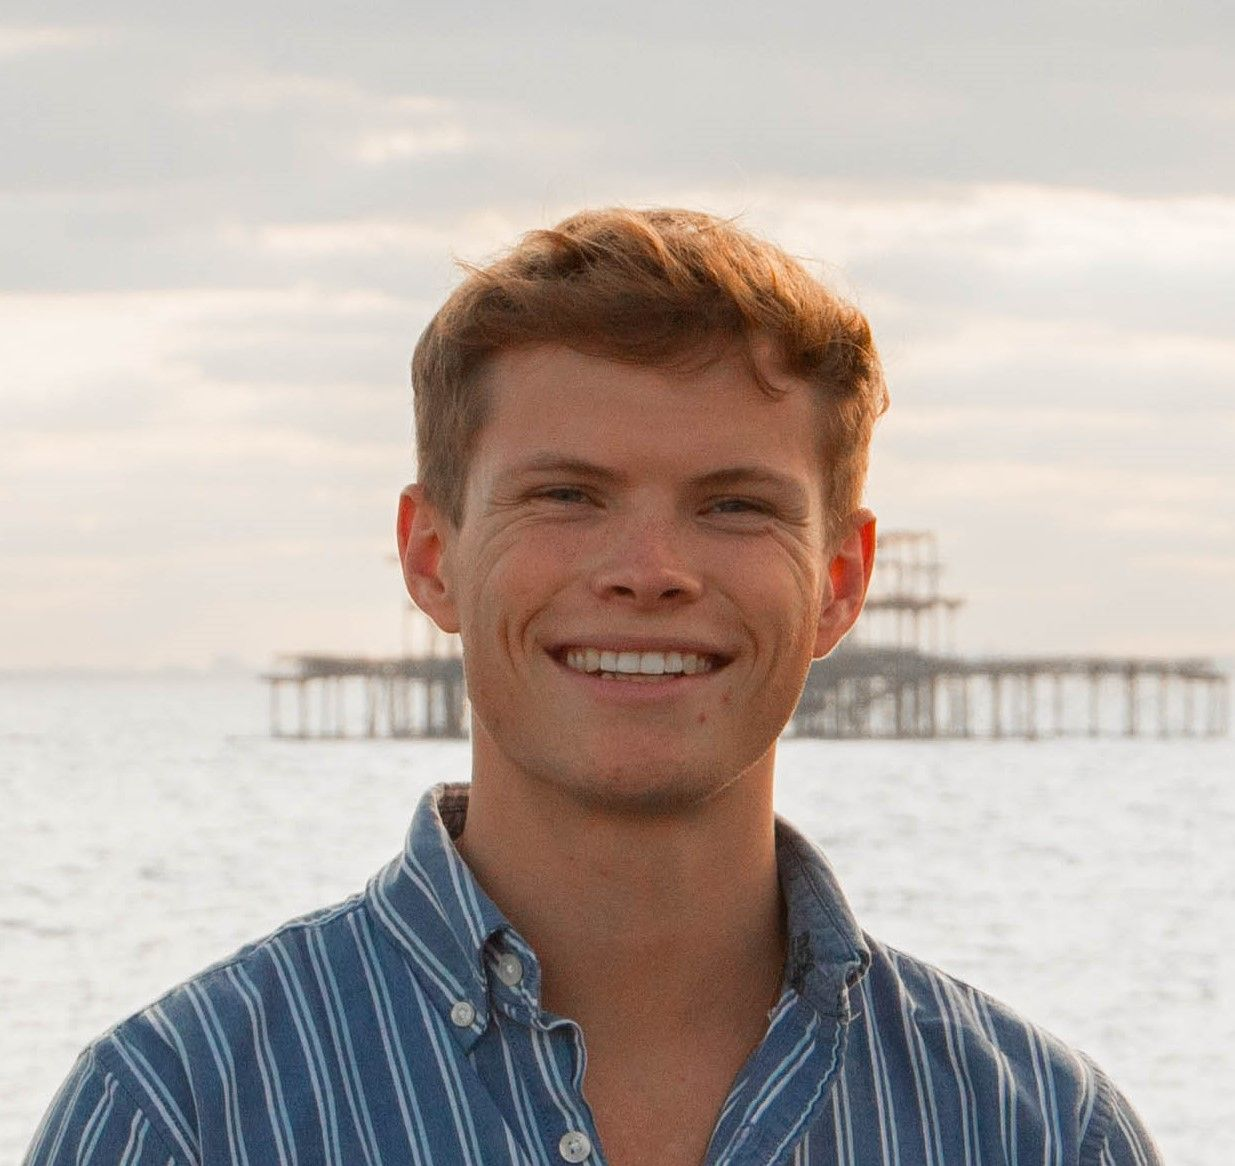 A picture of one of our co-founders, Matthew Denford